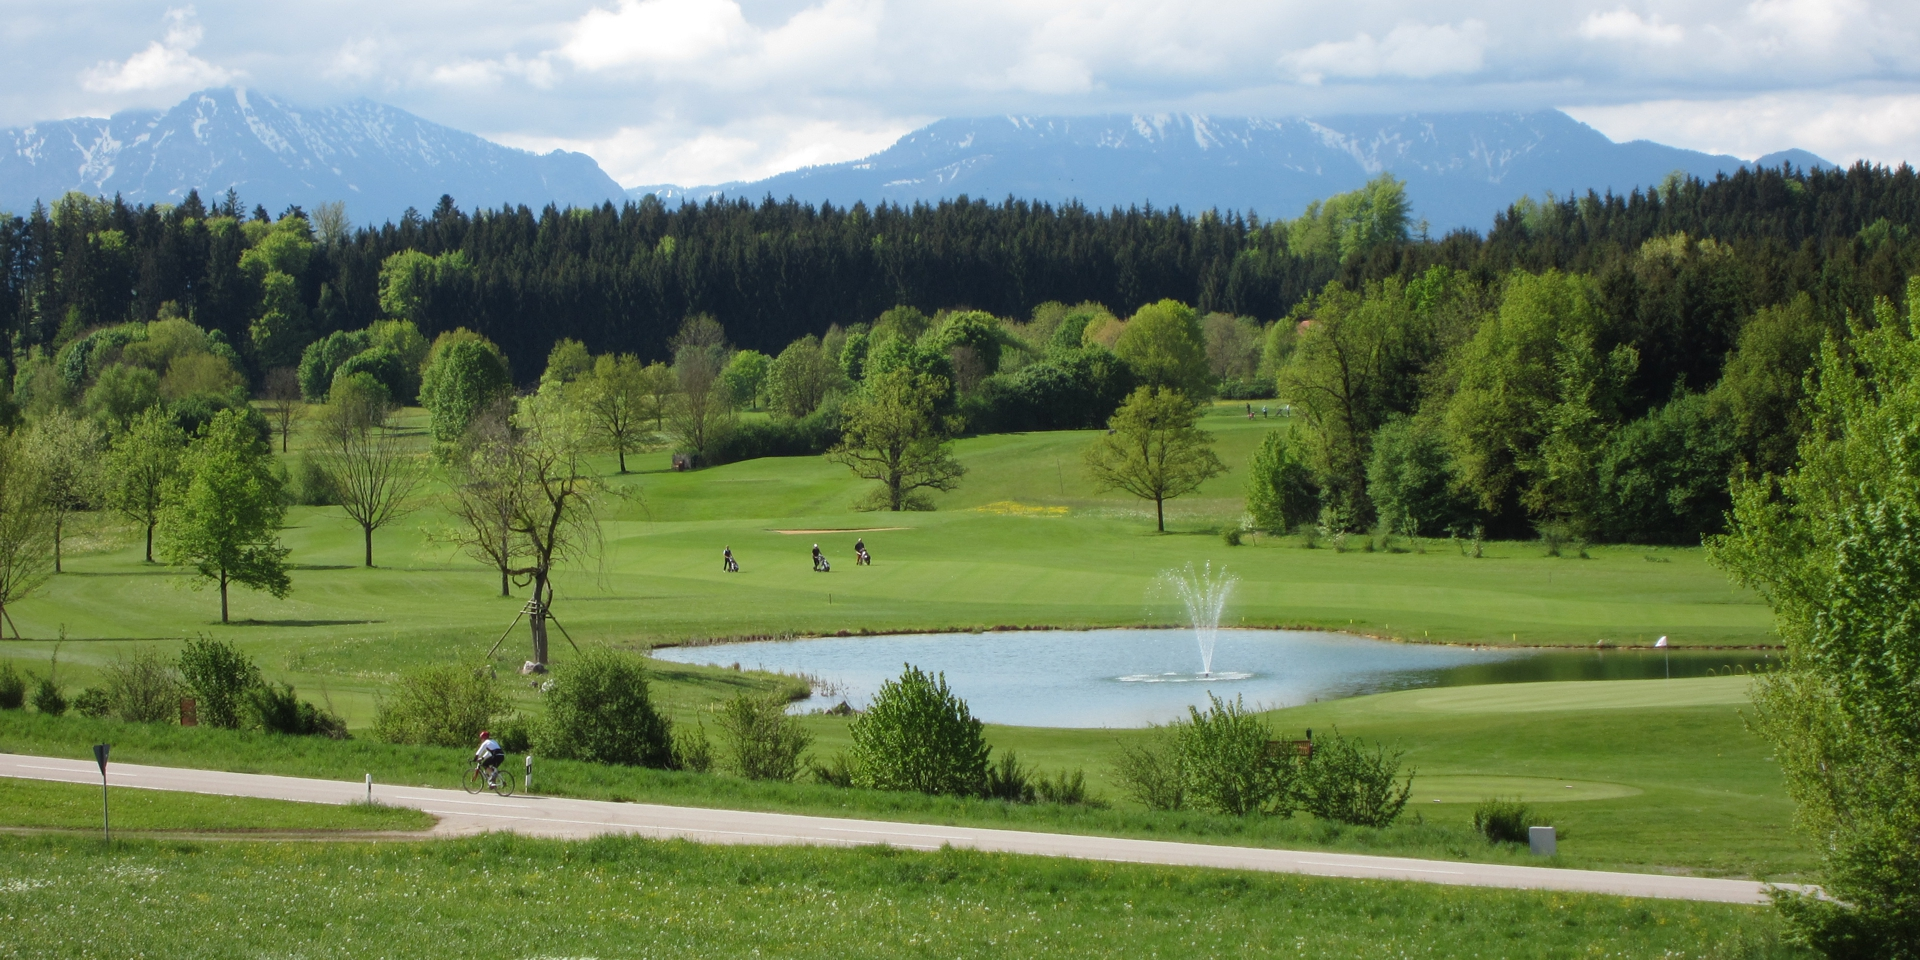 Whether you're a beginner or a professional, in Chiemgau you're bound to find the right golf course